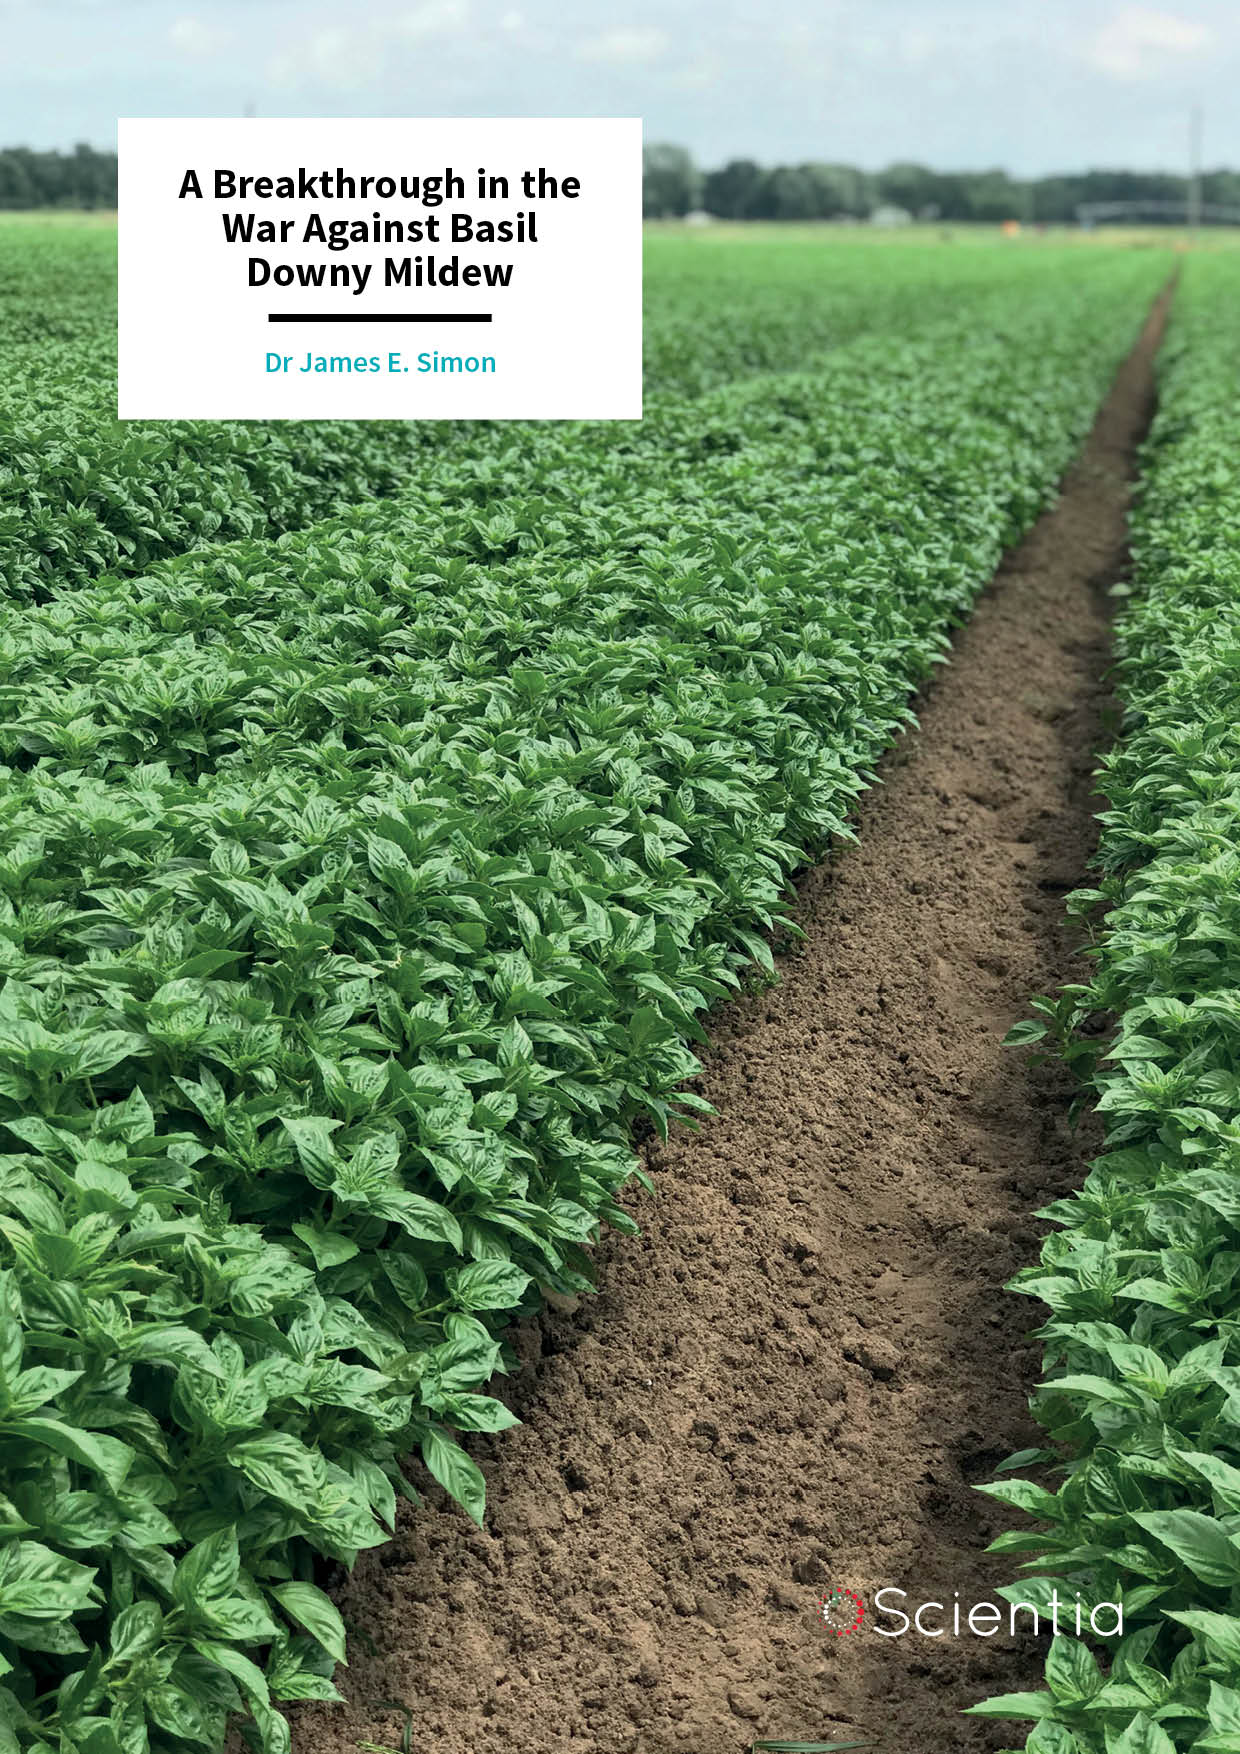 Dr James Simon – A Breakthrough in the War Against Basil Downy Mildew